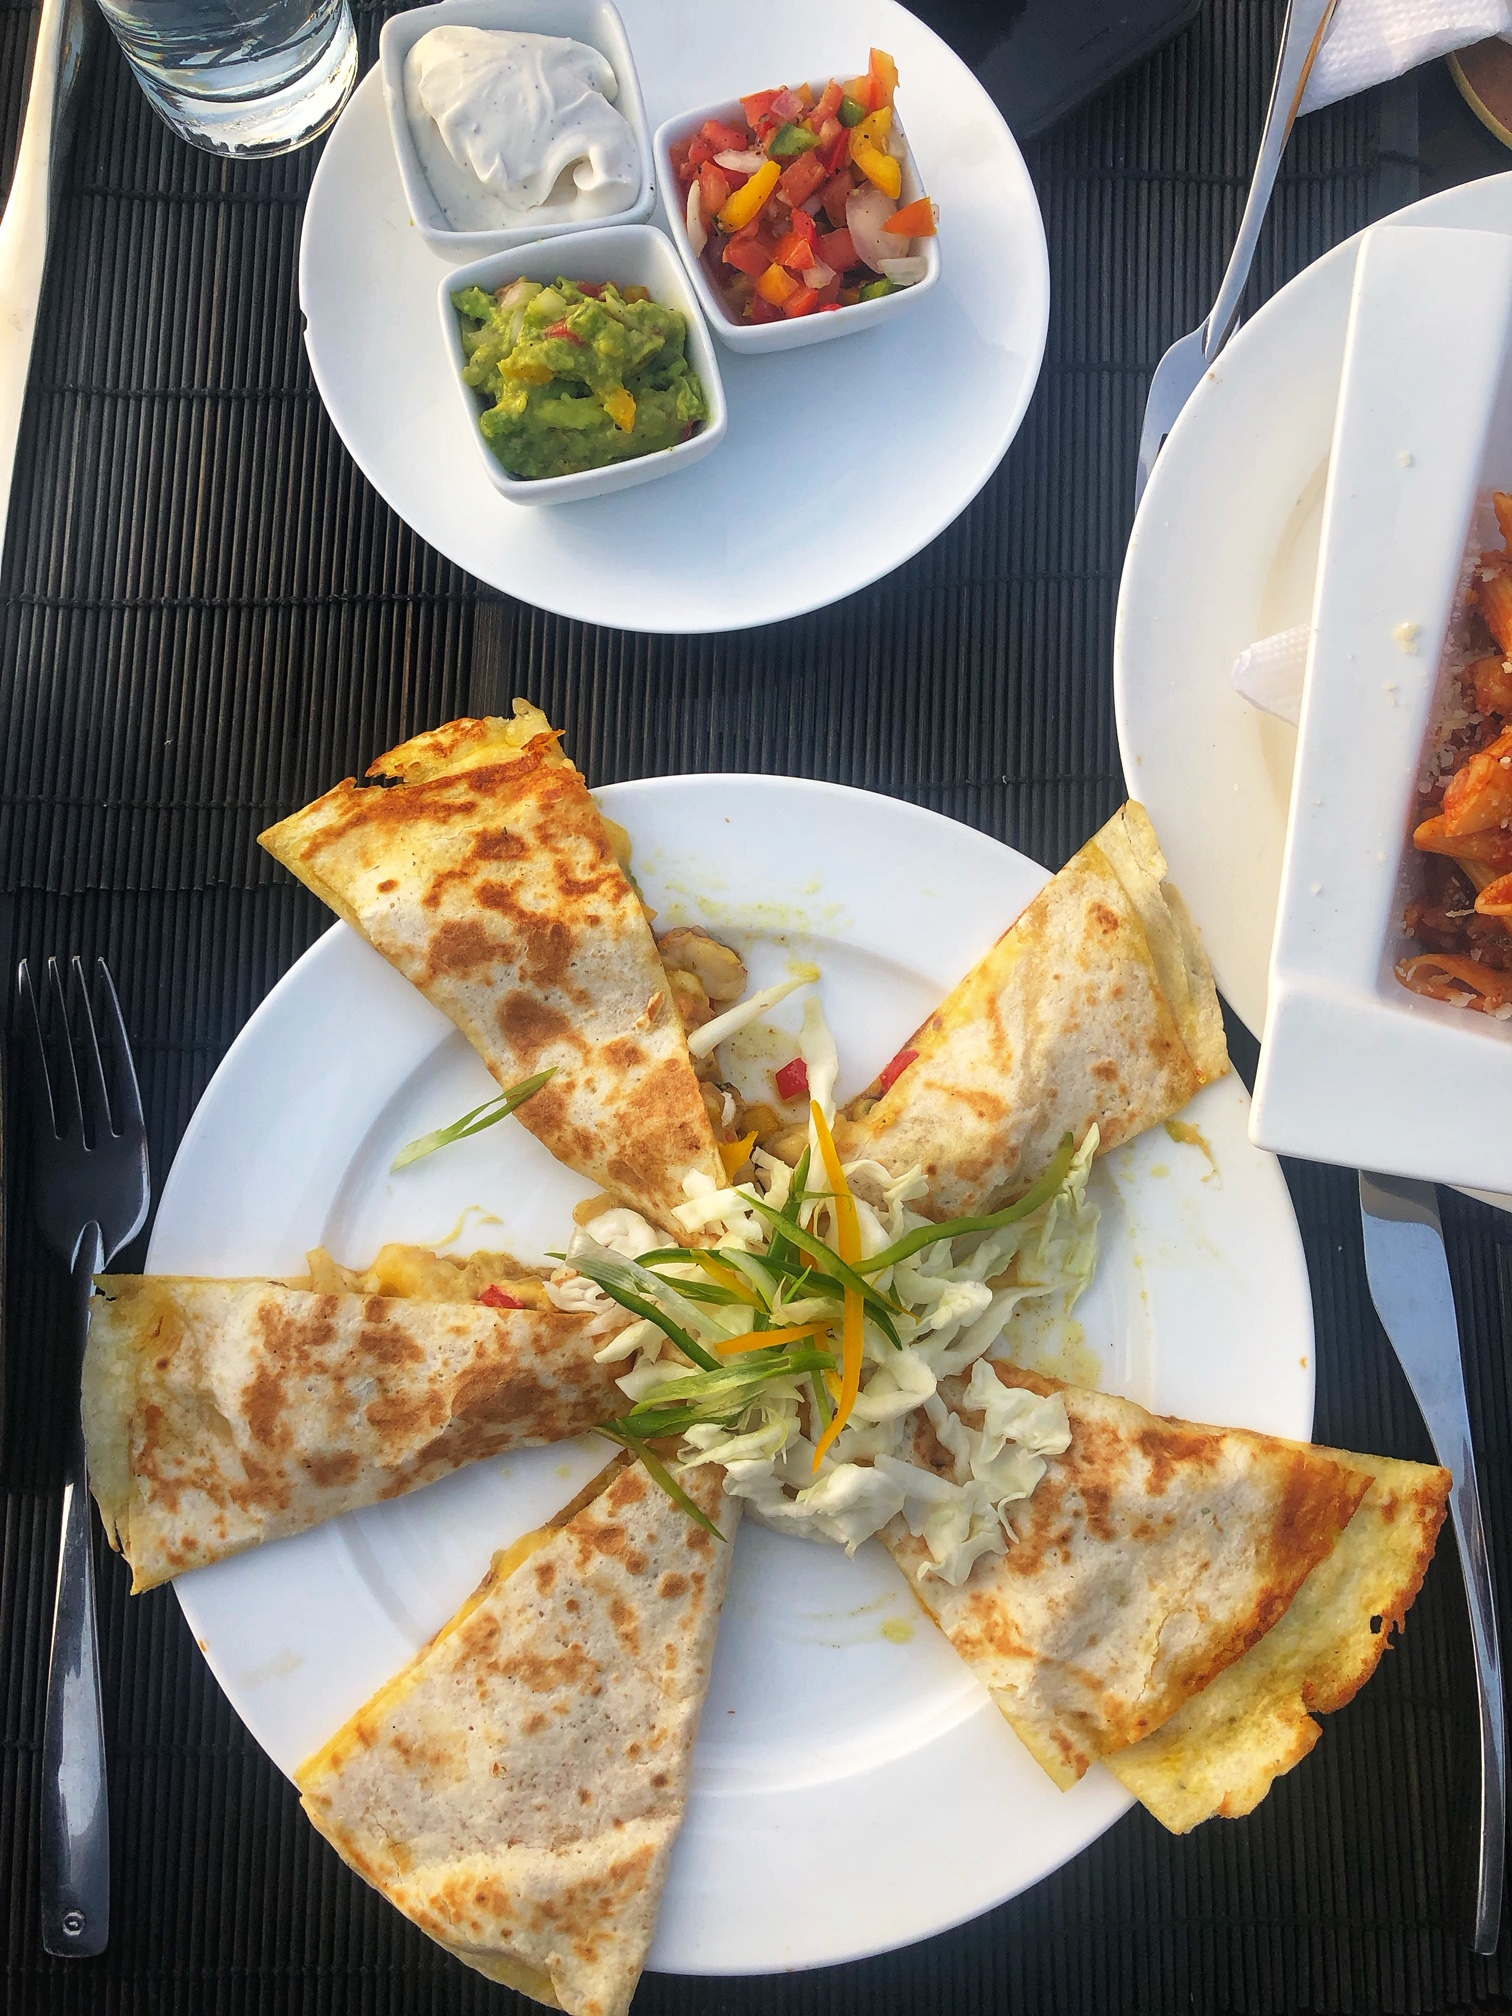 Quesadillas at KingFisher